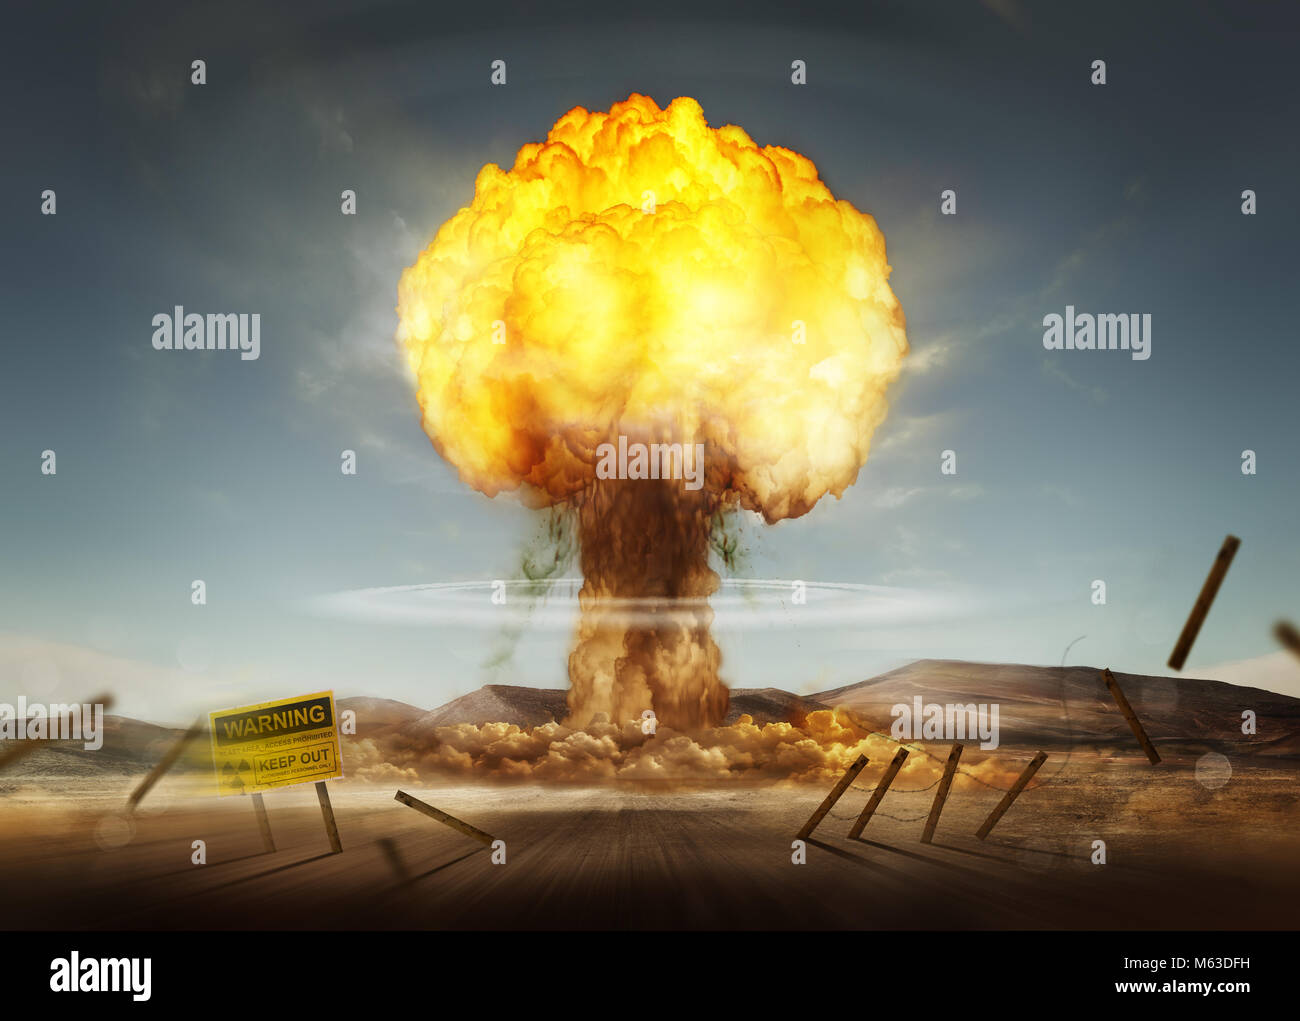 A nuclear explosion creating a mushroom cloud. Mixed media illustration. - Stock Image